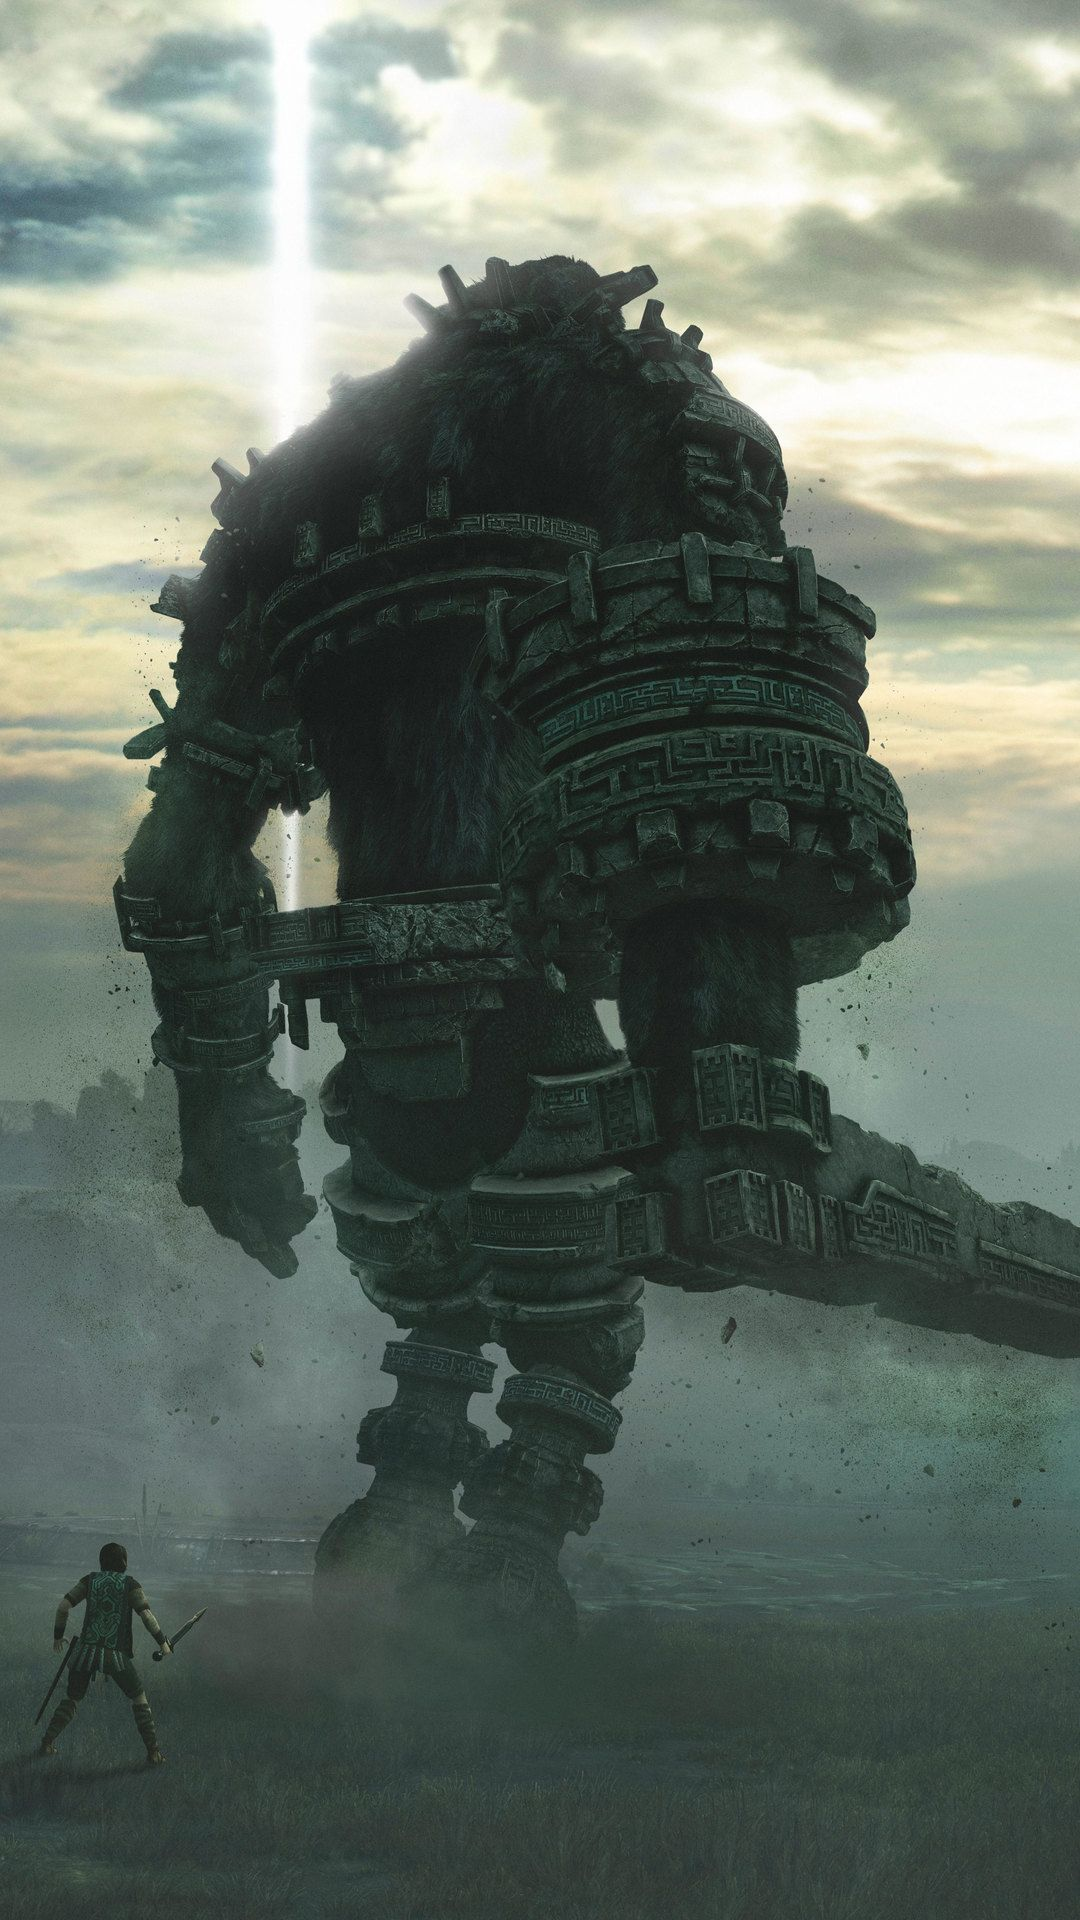 1080x1920 1080x1920 Shadow Of The Colossus 8k Iphone 7,6s,6 Plus, Pixel xl ...